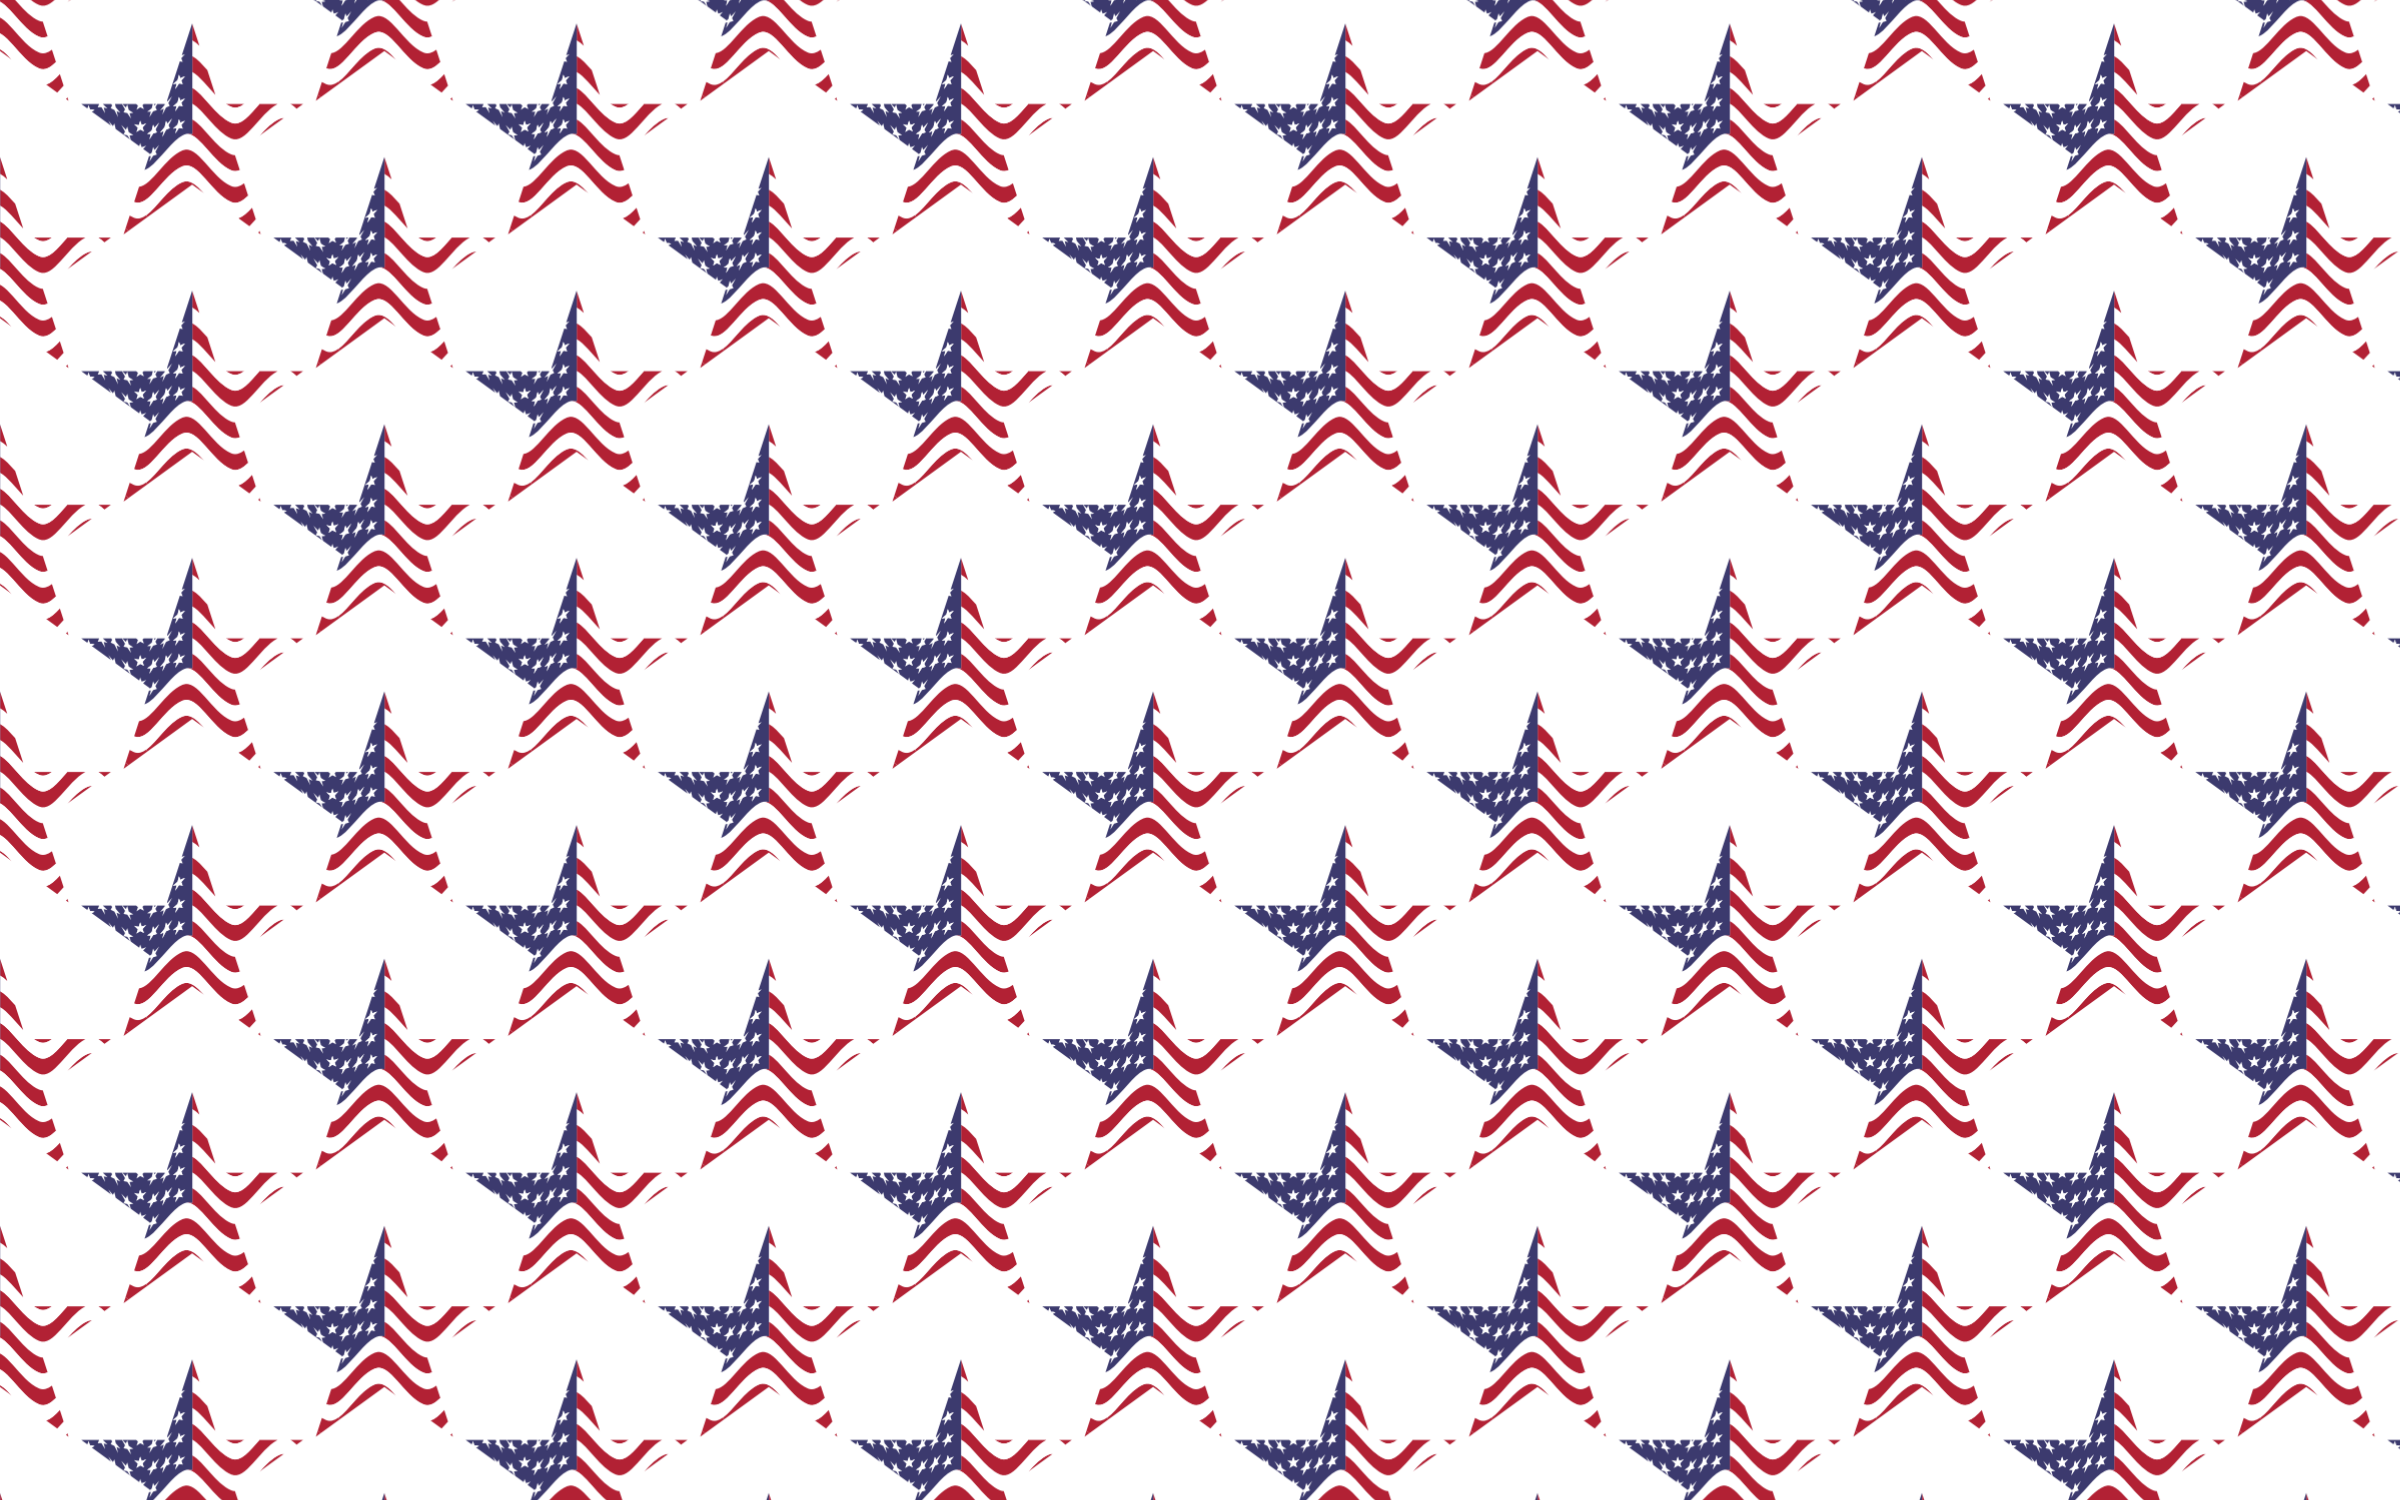 Star pattern clipart picture royalty free Free Star Pattern Cliparts, Download Free Clip Art, Free Clip Art on ... picture royalty free